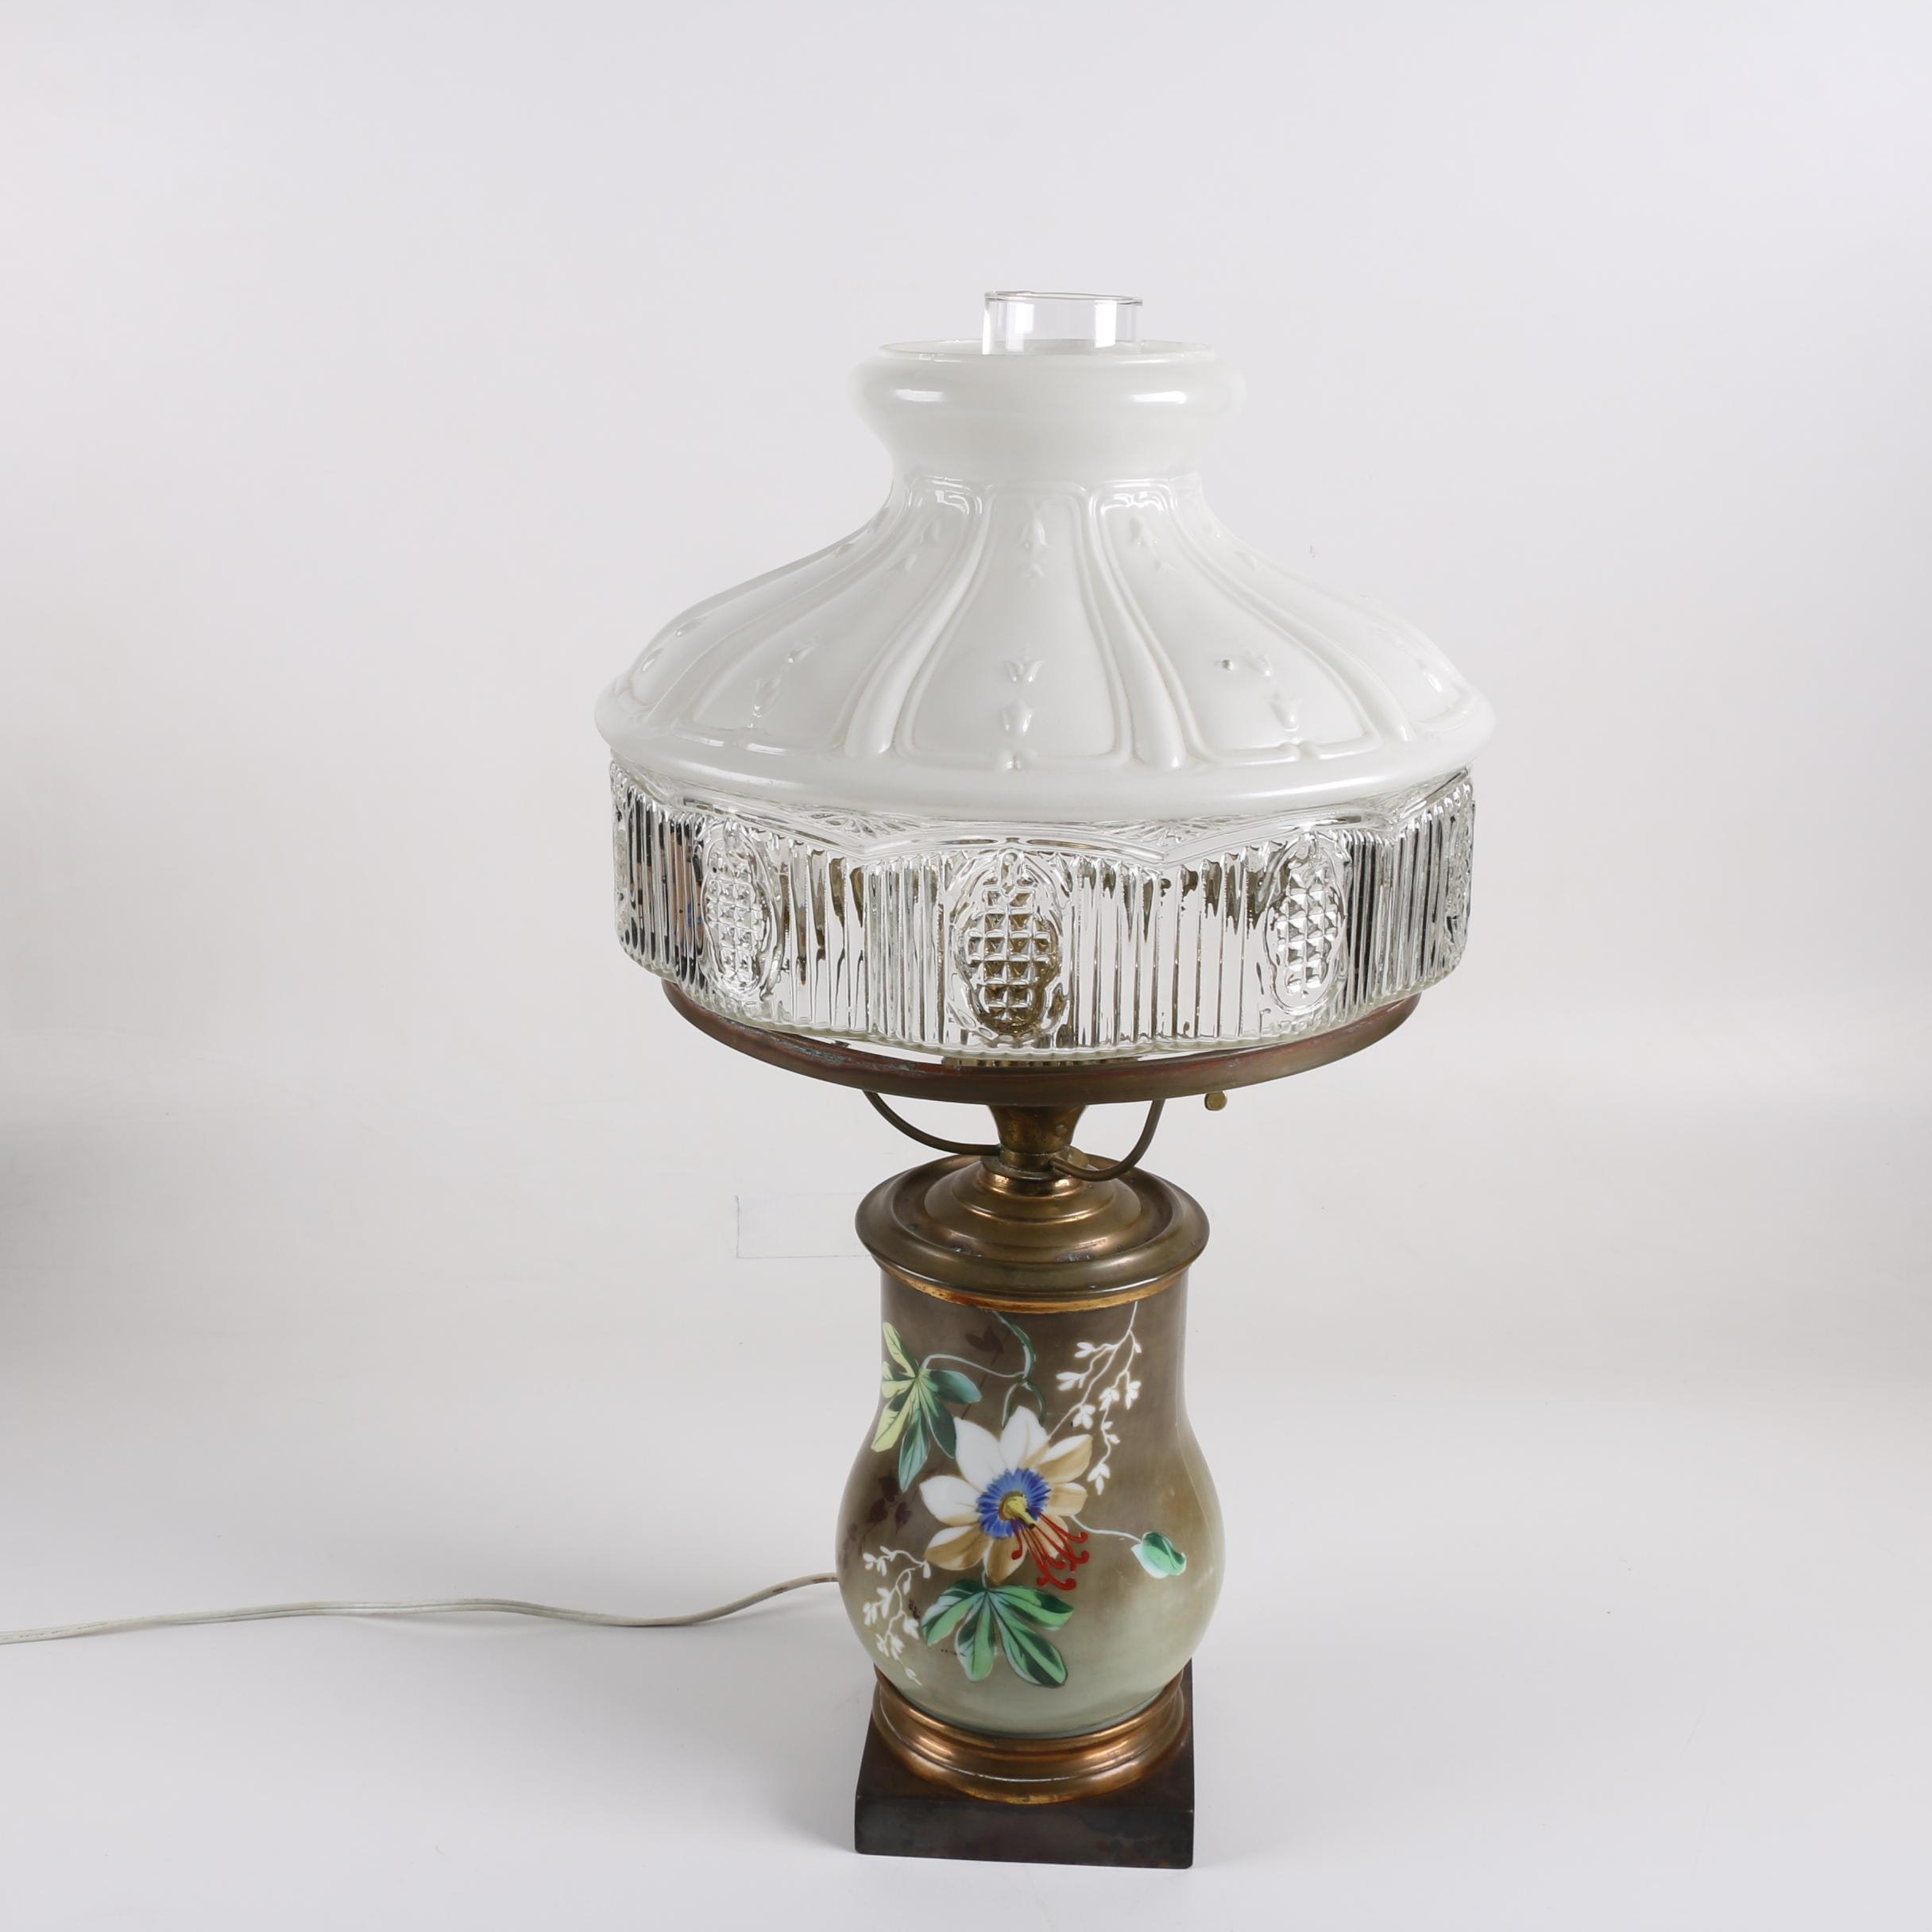 Converted Hand-Painted Ceramic Oil Lamp with Glass Shade